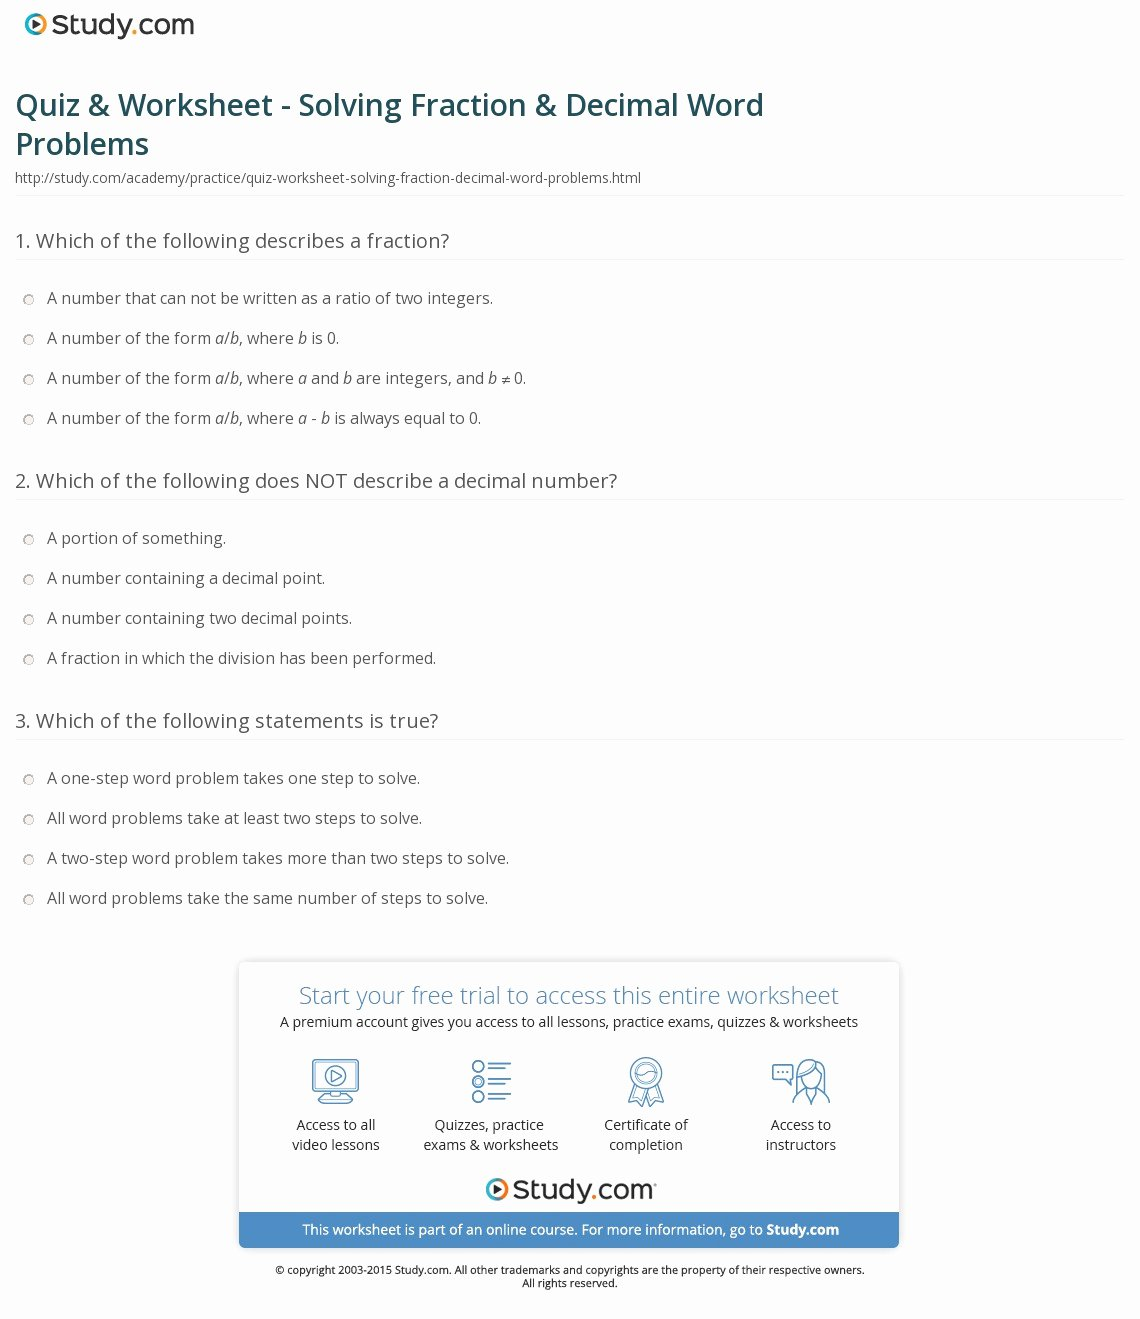 Decimal Word Problems Worksheet Elegant Quiz & Worksheet solving Fraction & Decimal Word